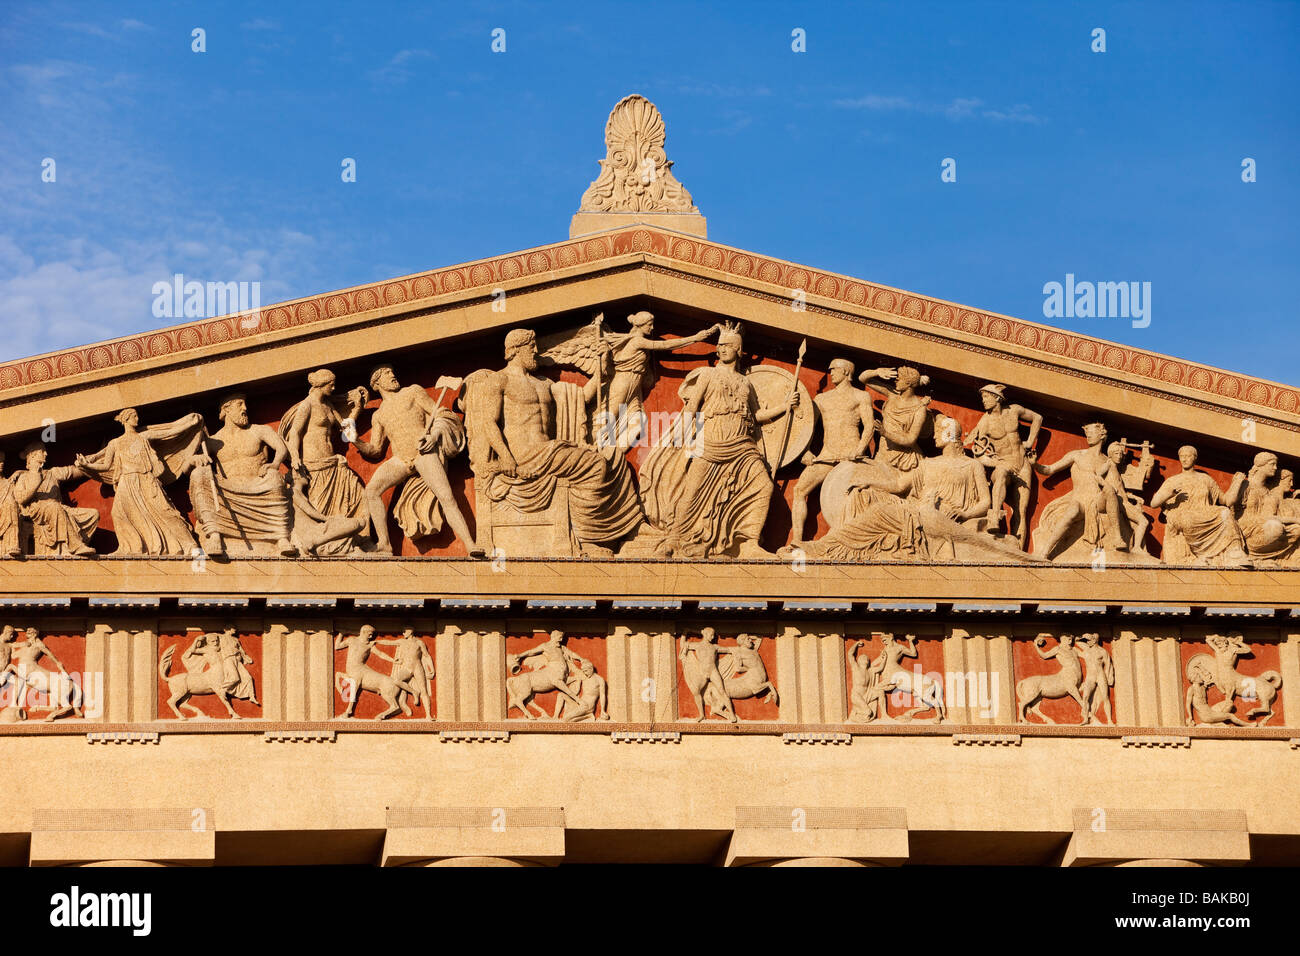 Detail on the Parthenon Replica in Centennial Park, Nashville, Tennessee, USA - Stock Image